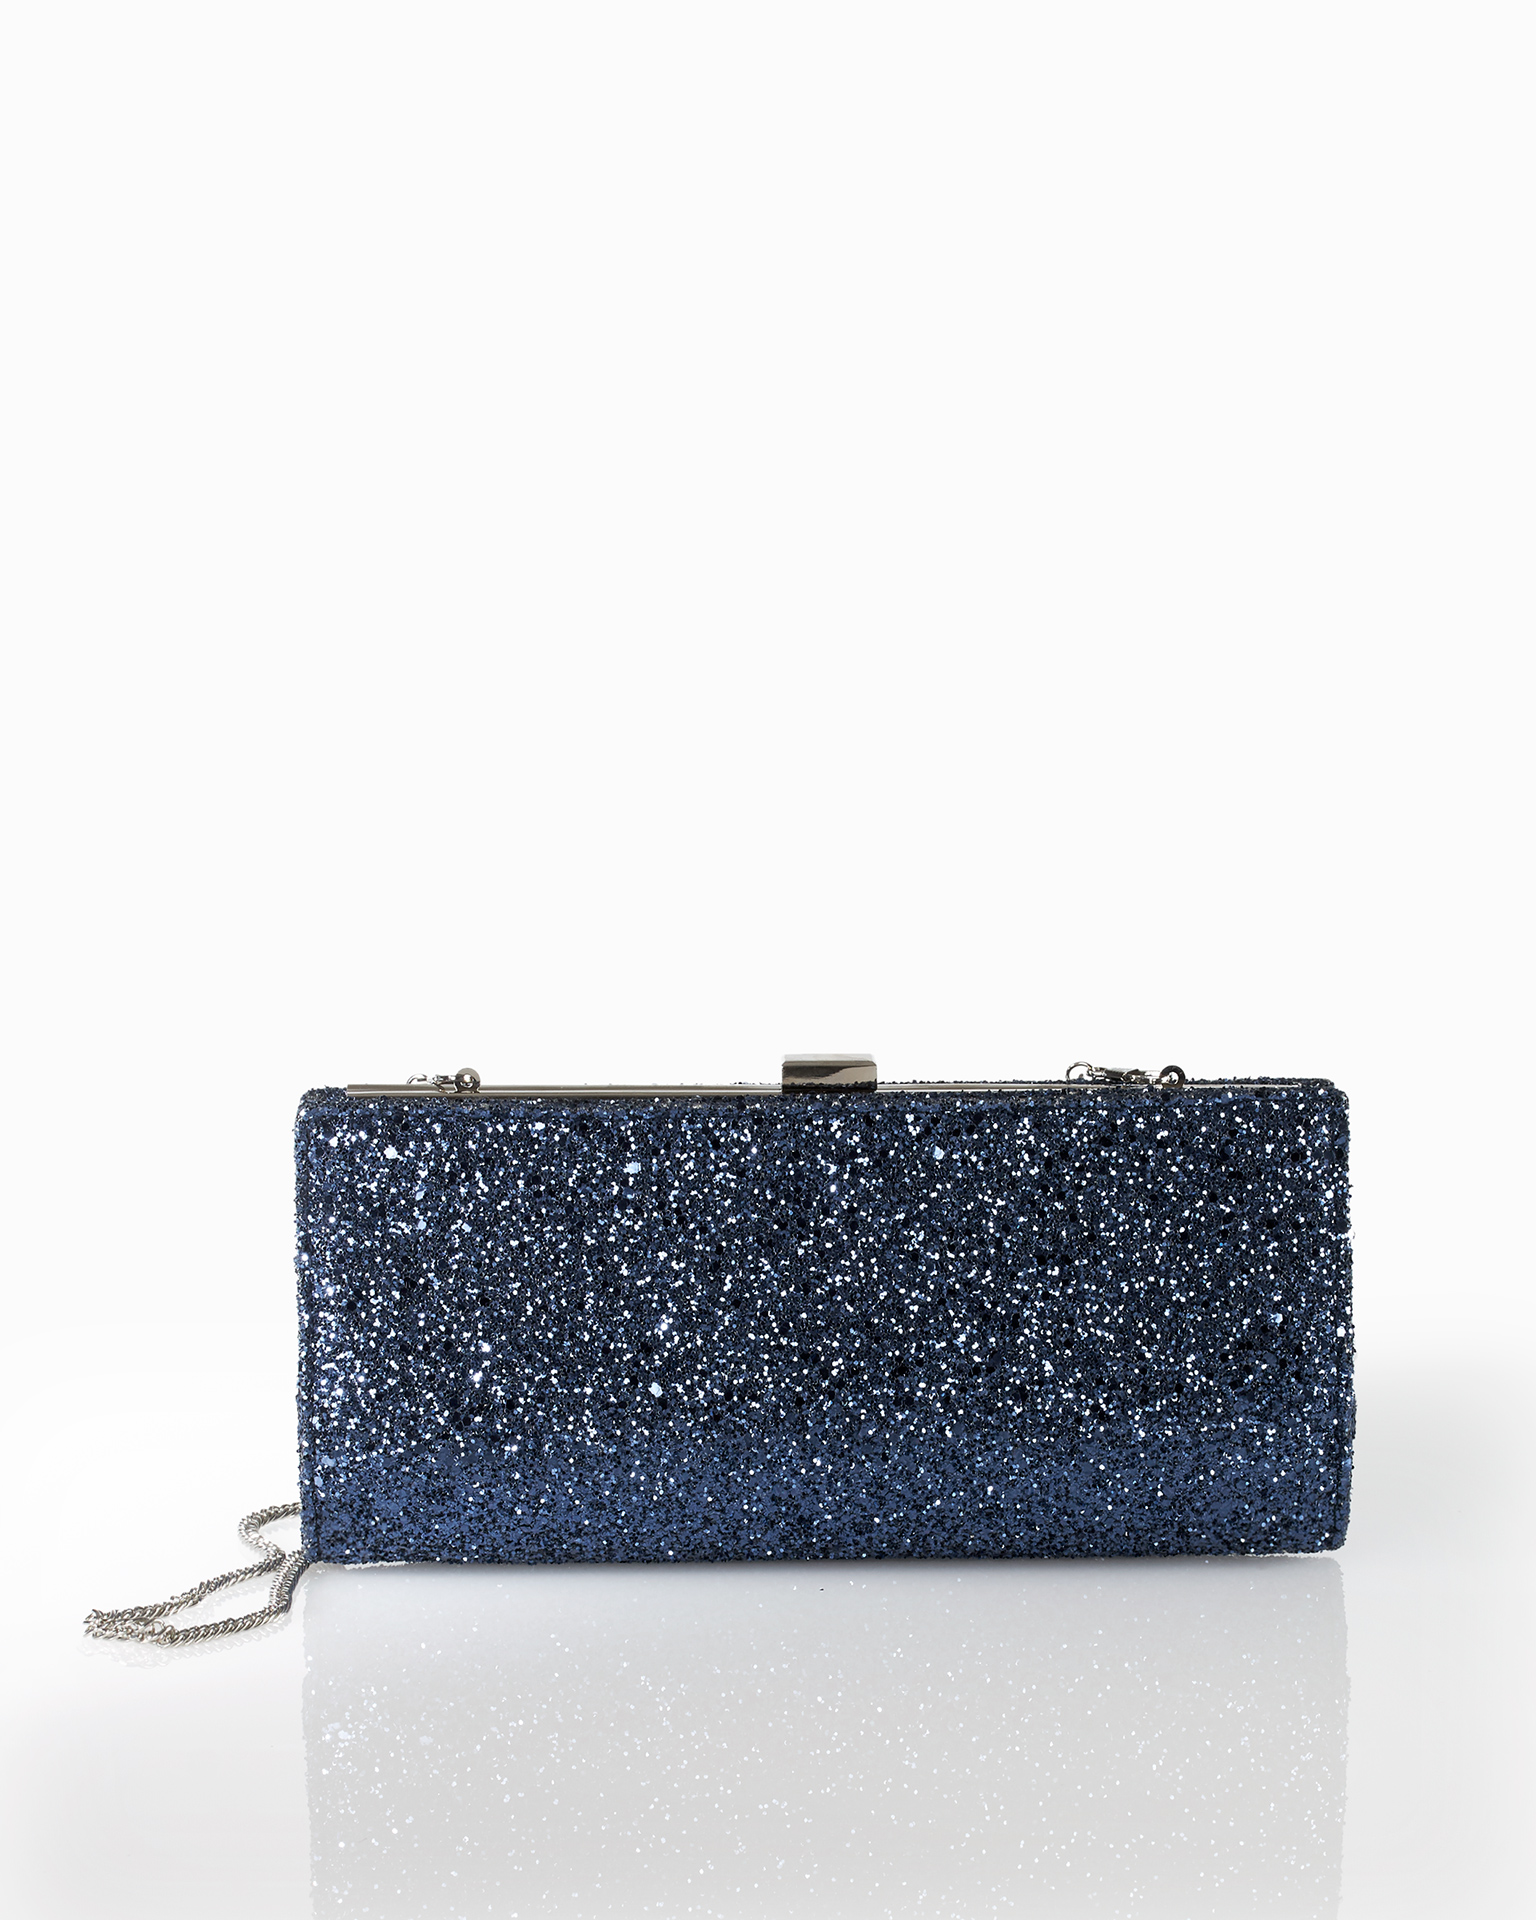 Clutch de cocktail en glitter, disponible en couleur noir, gris plomb, bleu marine, argent et champagne. Collection FIESTA AIRE BARCELONA 2018.